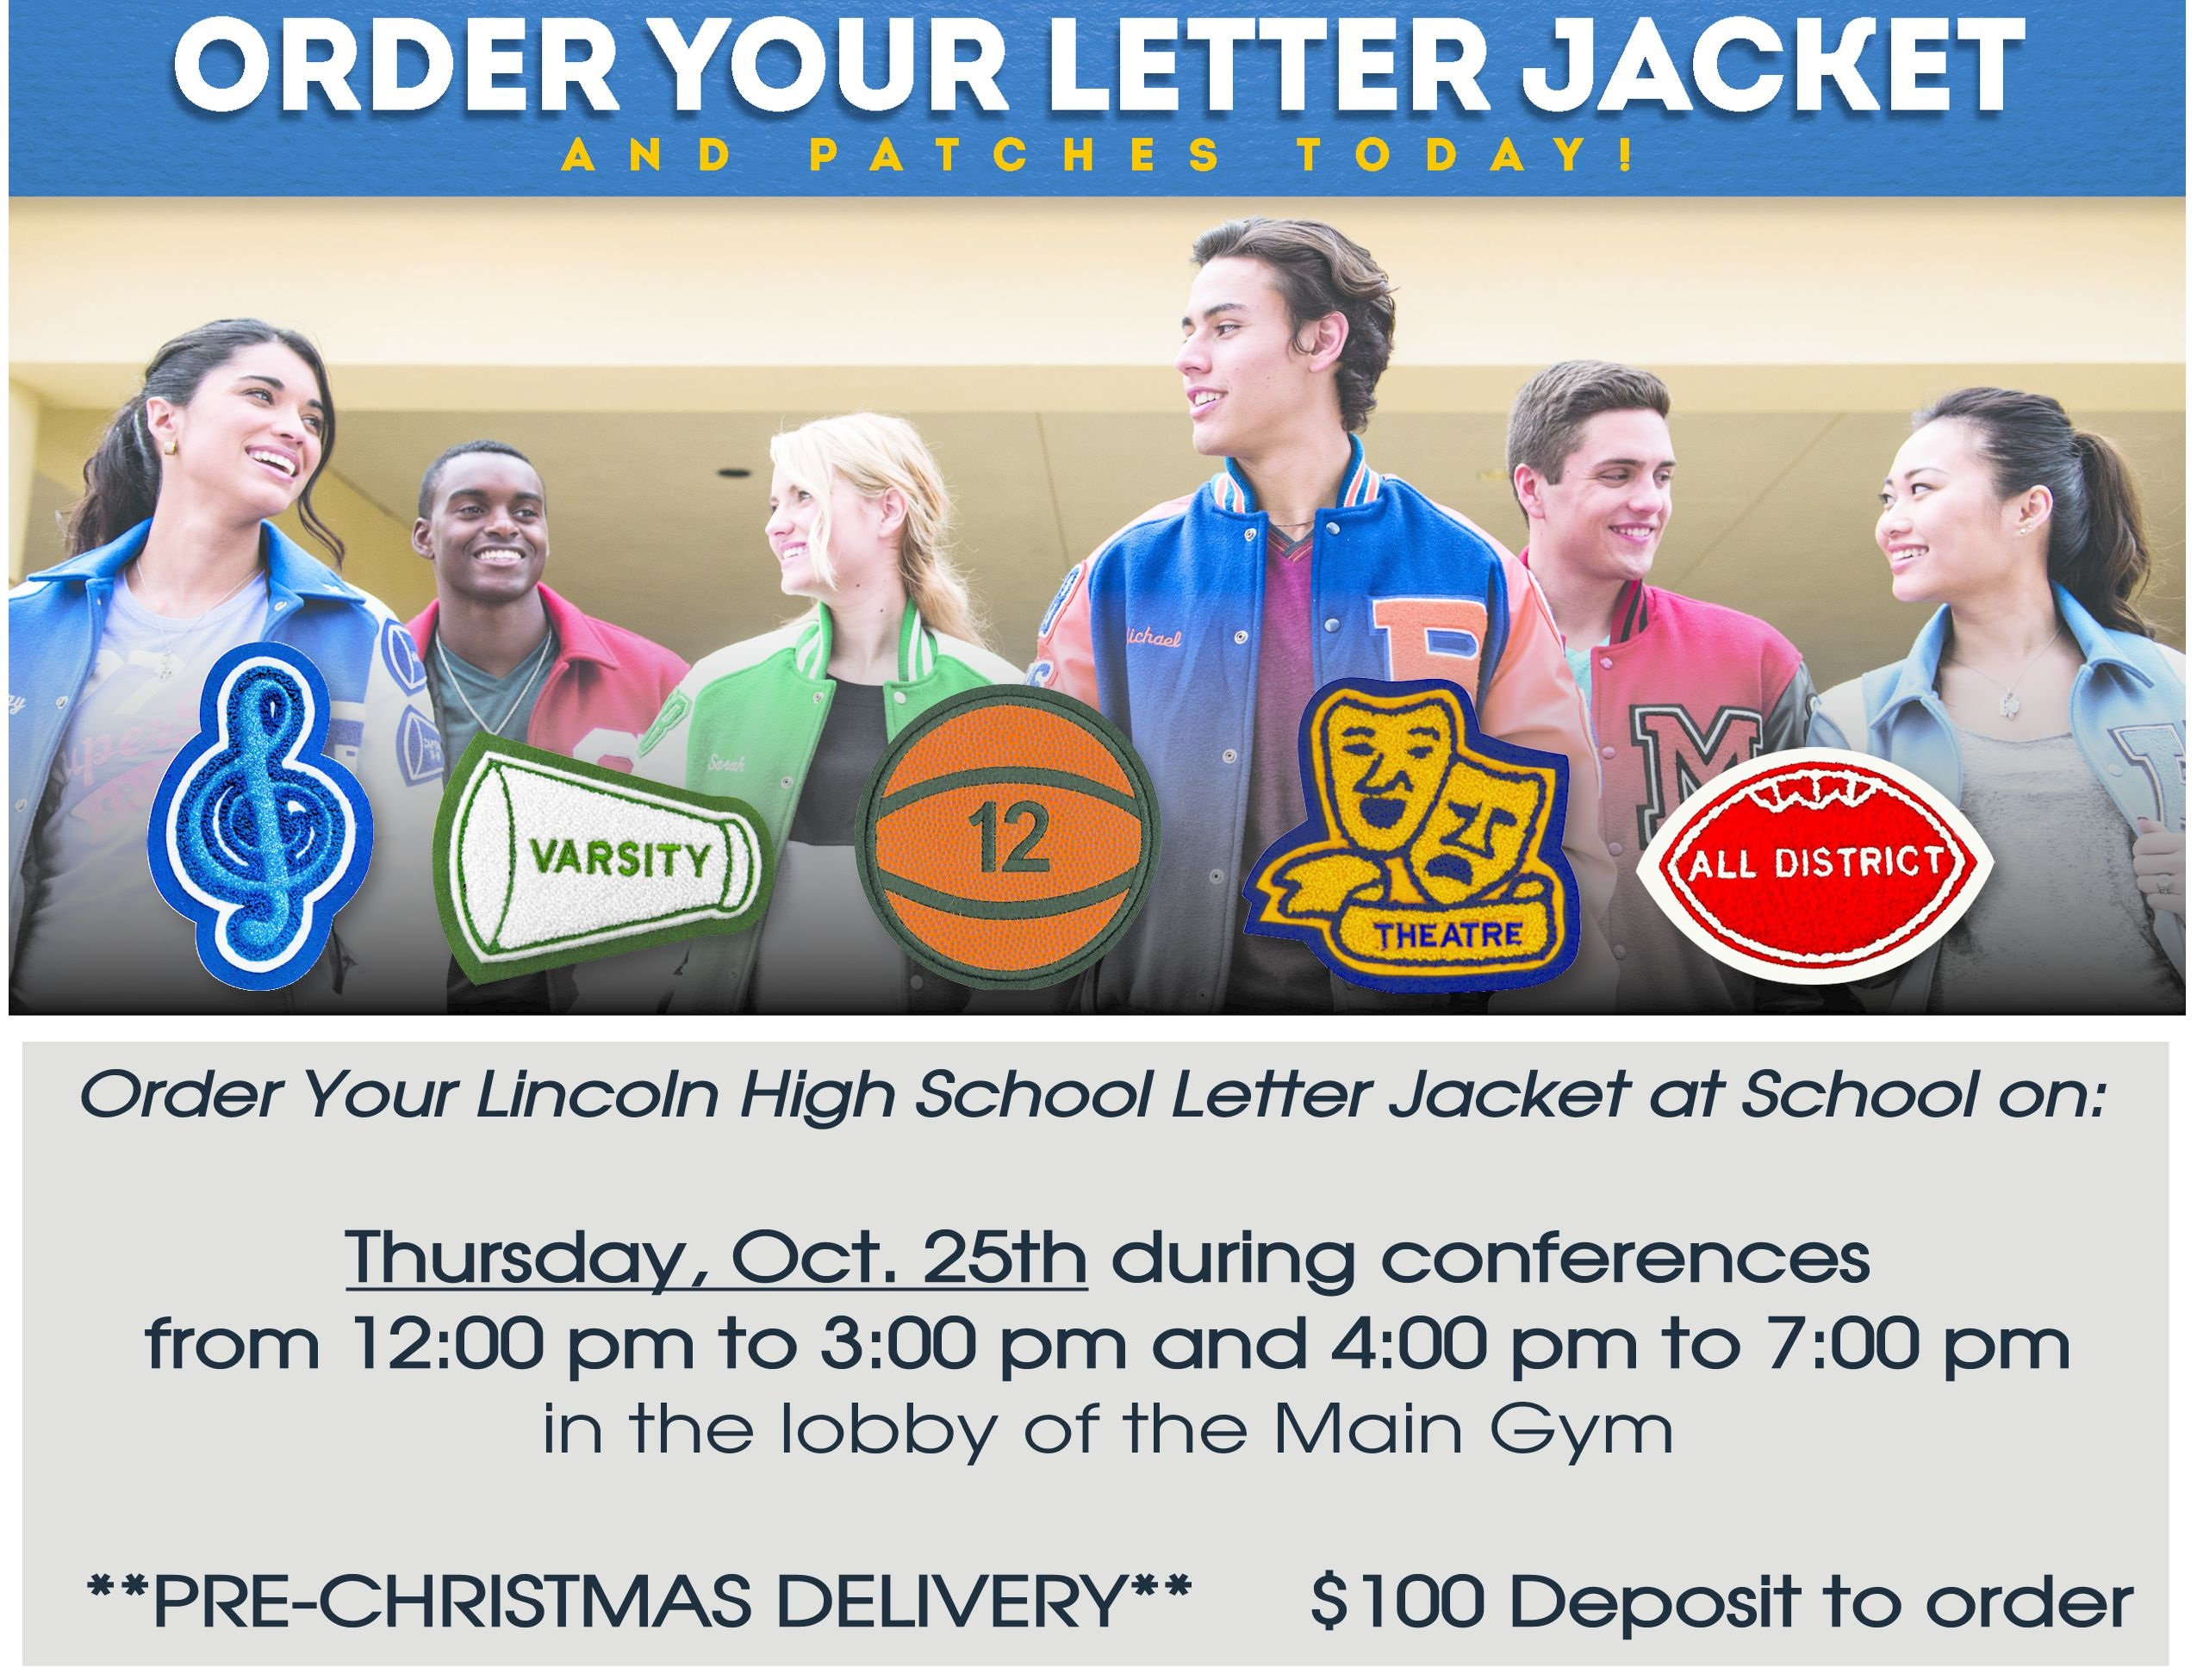 Varsity Jacket Event on October 25th